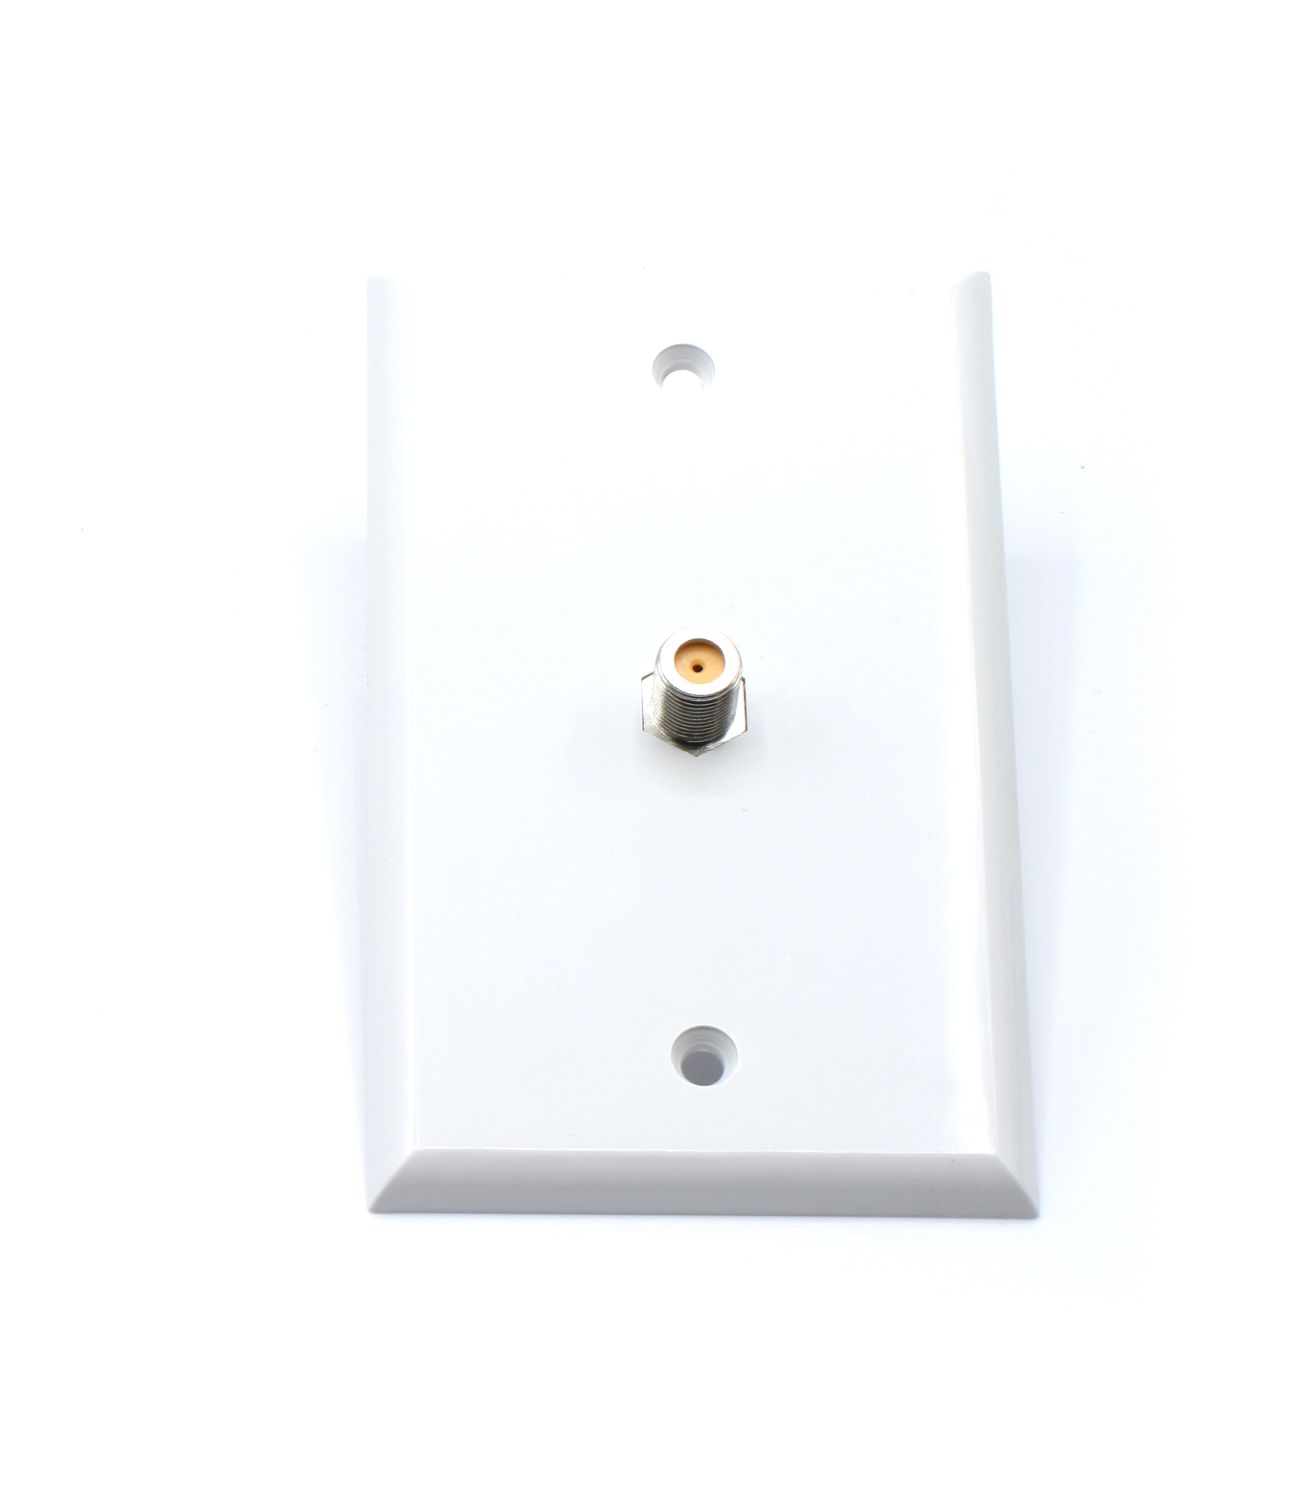 White Video Wall Jack for Coax Cable F Type Coaxial Wallplate (Wall Plate) � 3 GHz Coupler approved for Comcast,... by THE CIMPLE CO